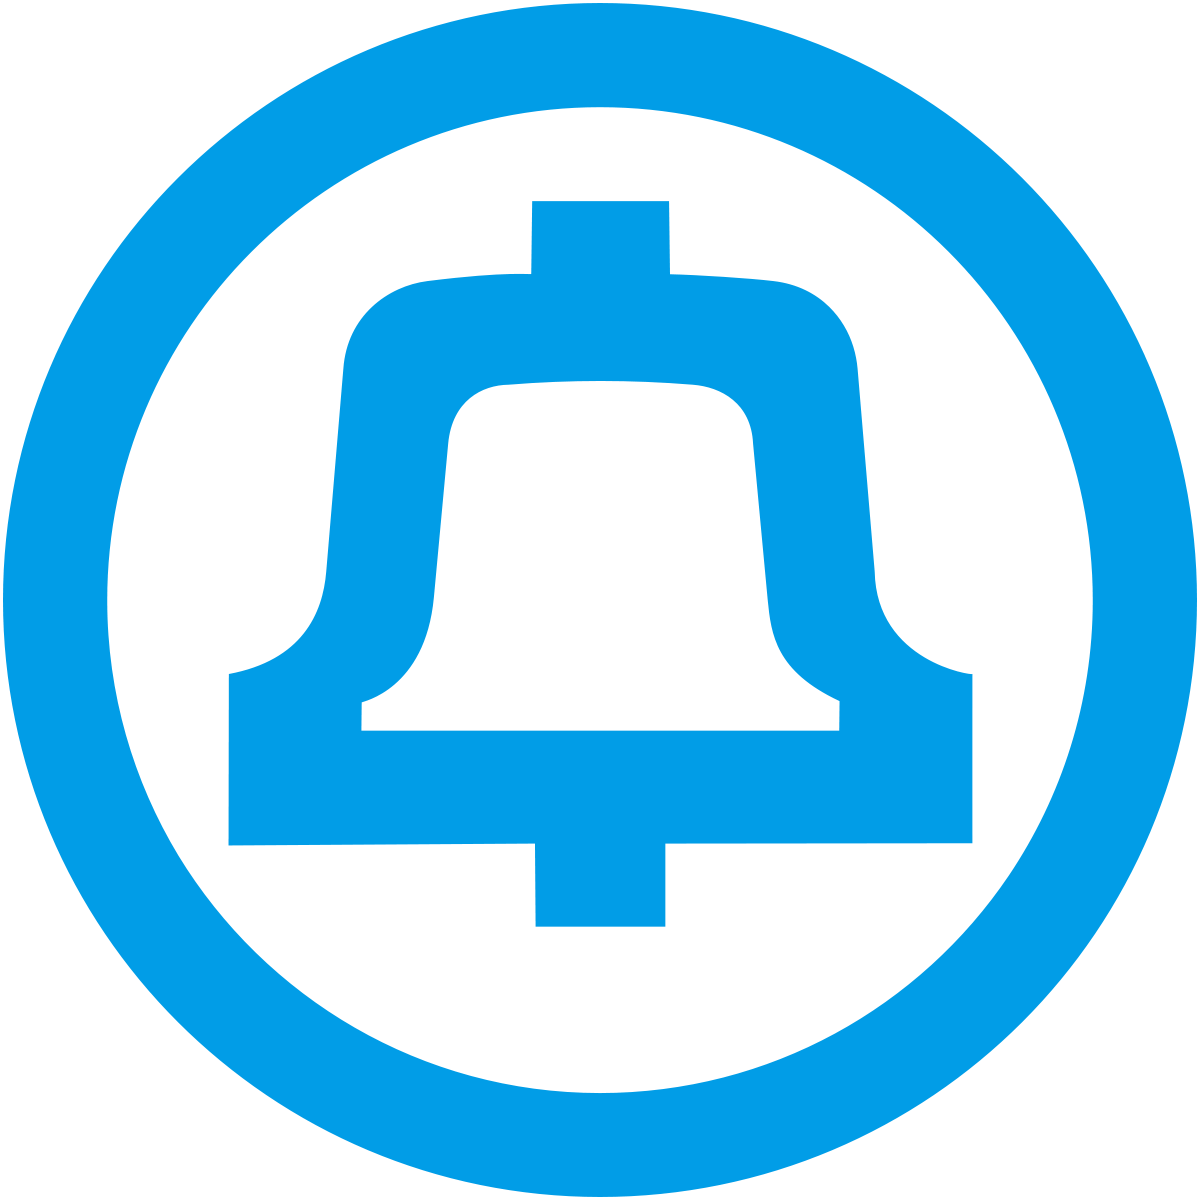 1950s michigan bell telephone company png